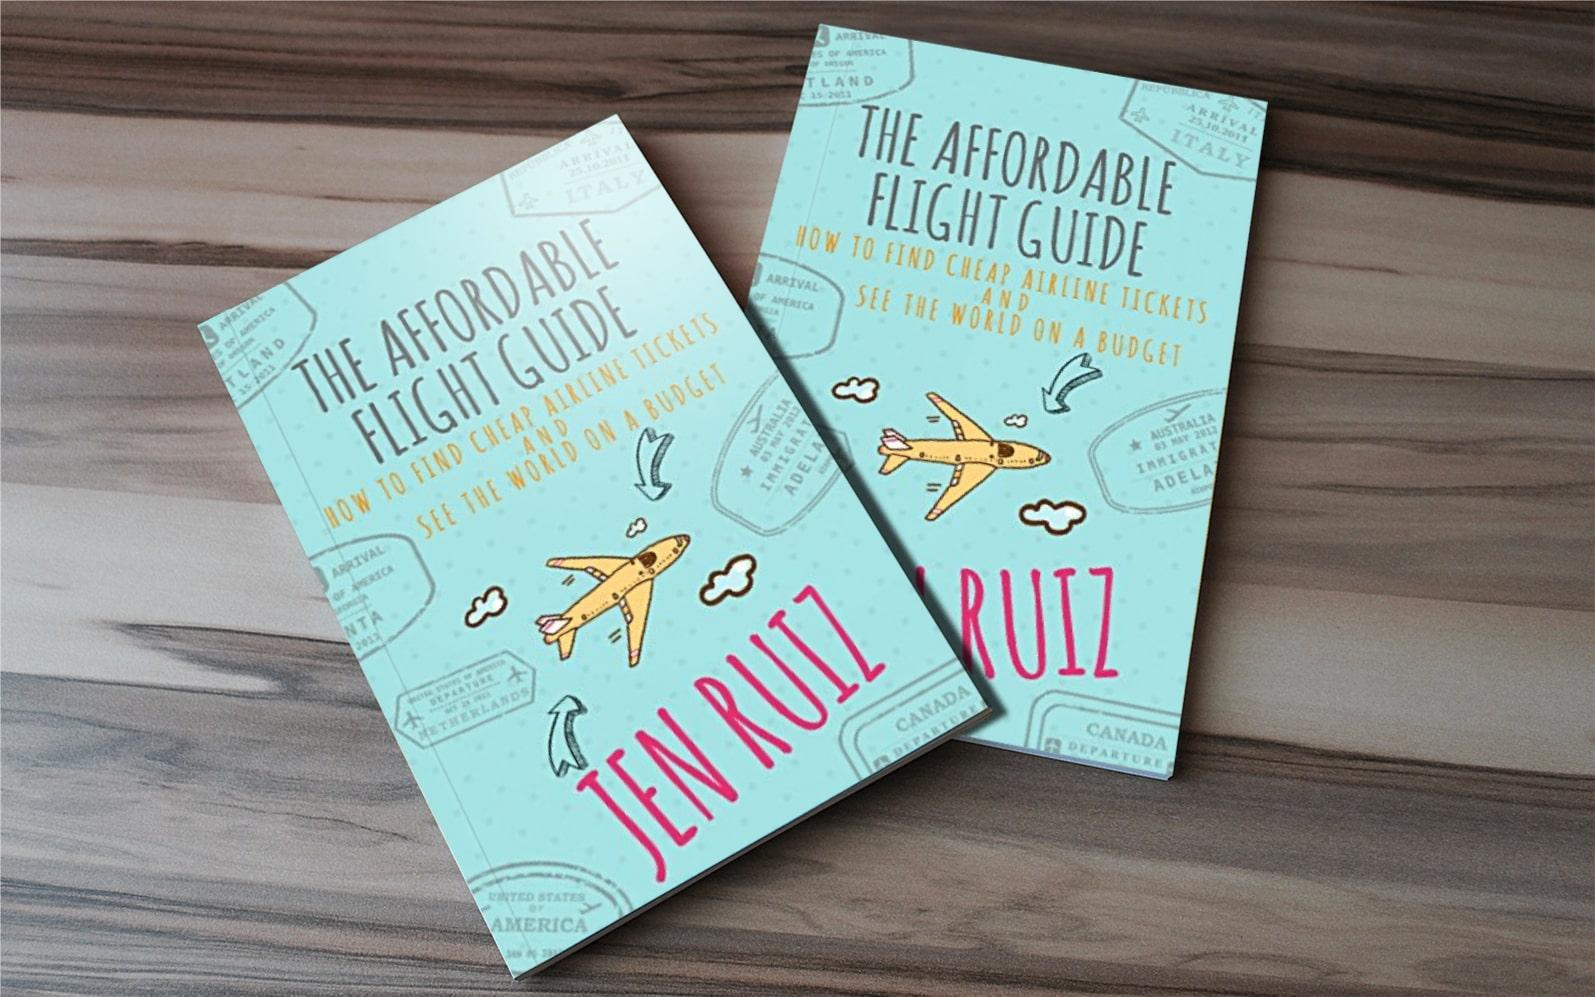 Affordable Flight Guide Review Copy